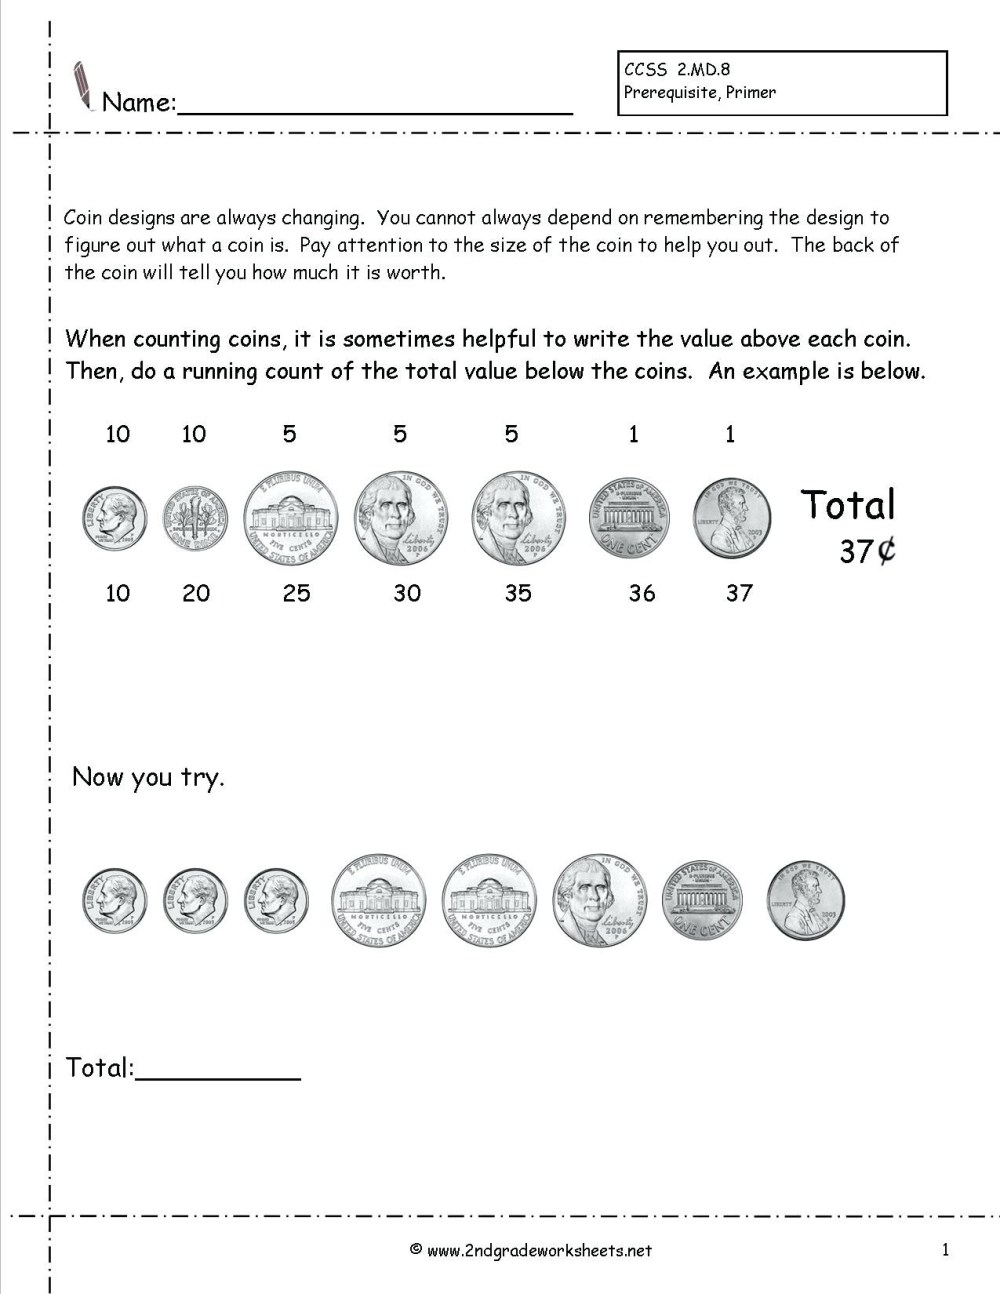 medium resolution of Worksheet Counting Pennies And Nickles   Printable Worksheets and  Activities for Teachers